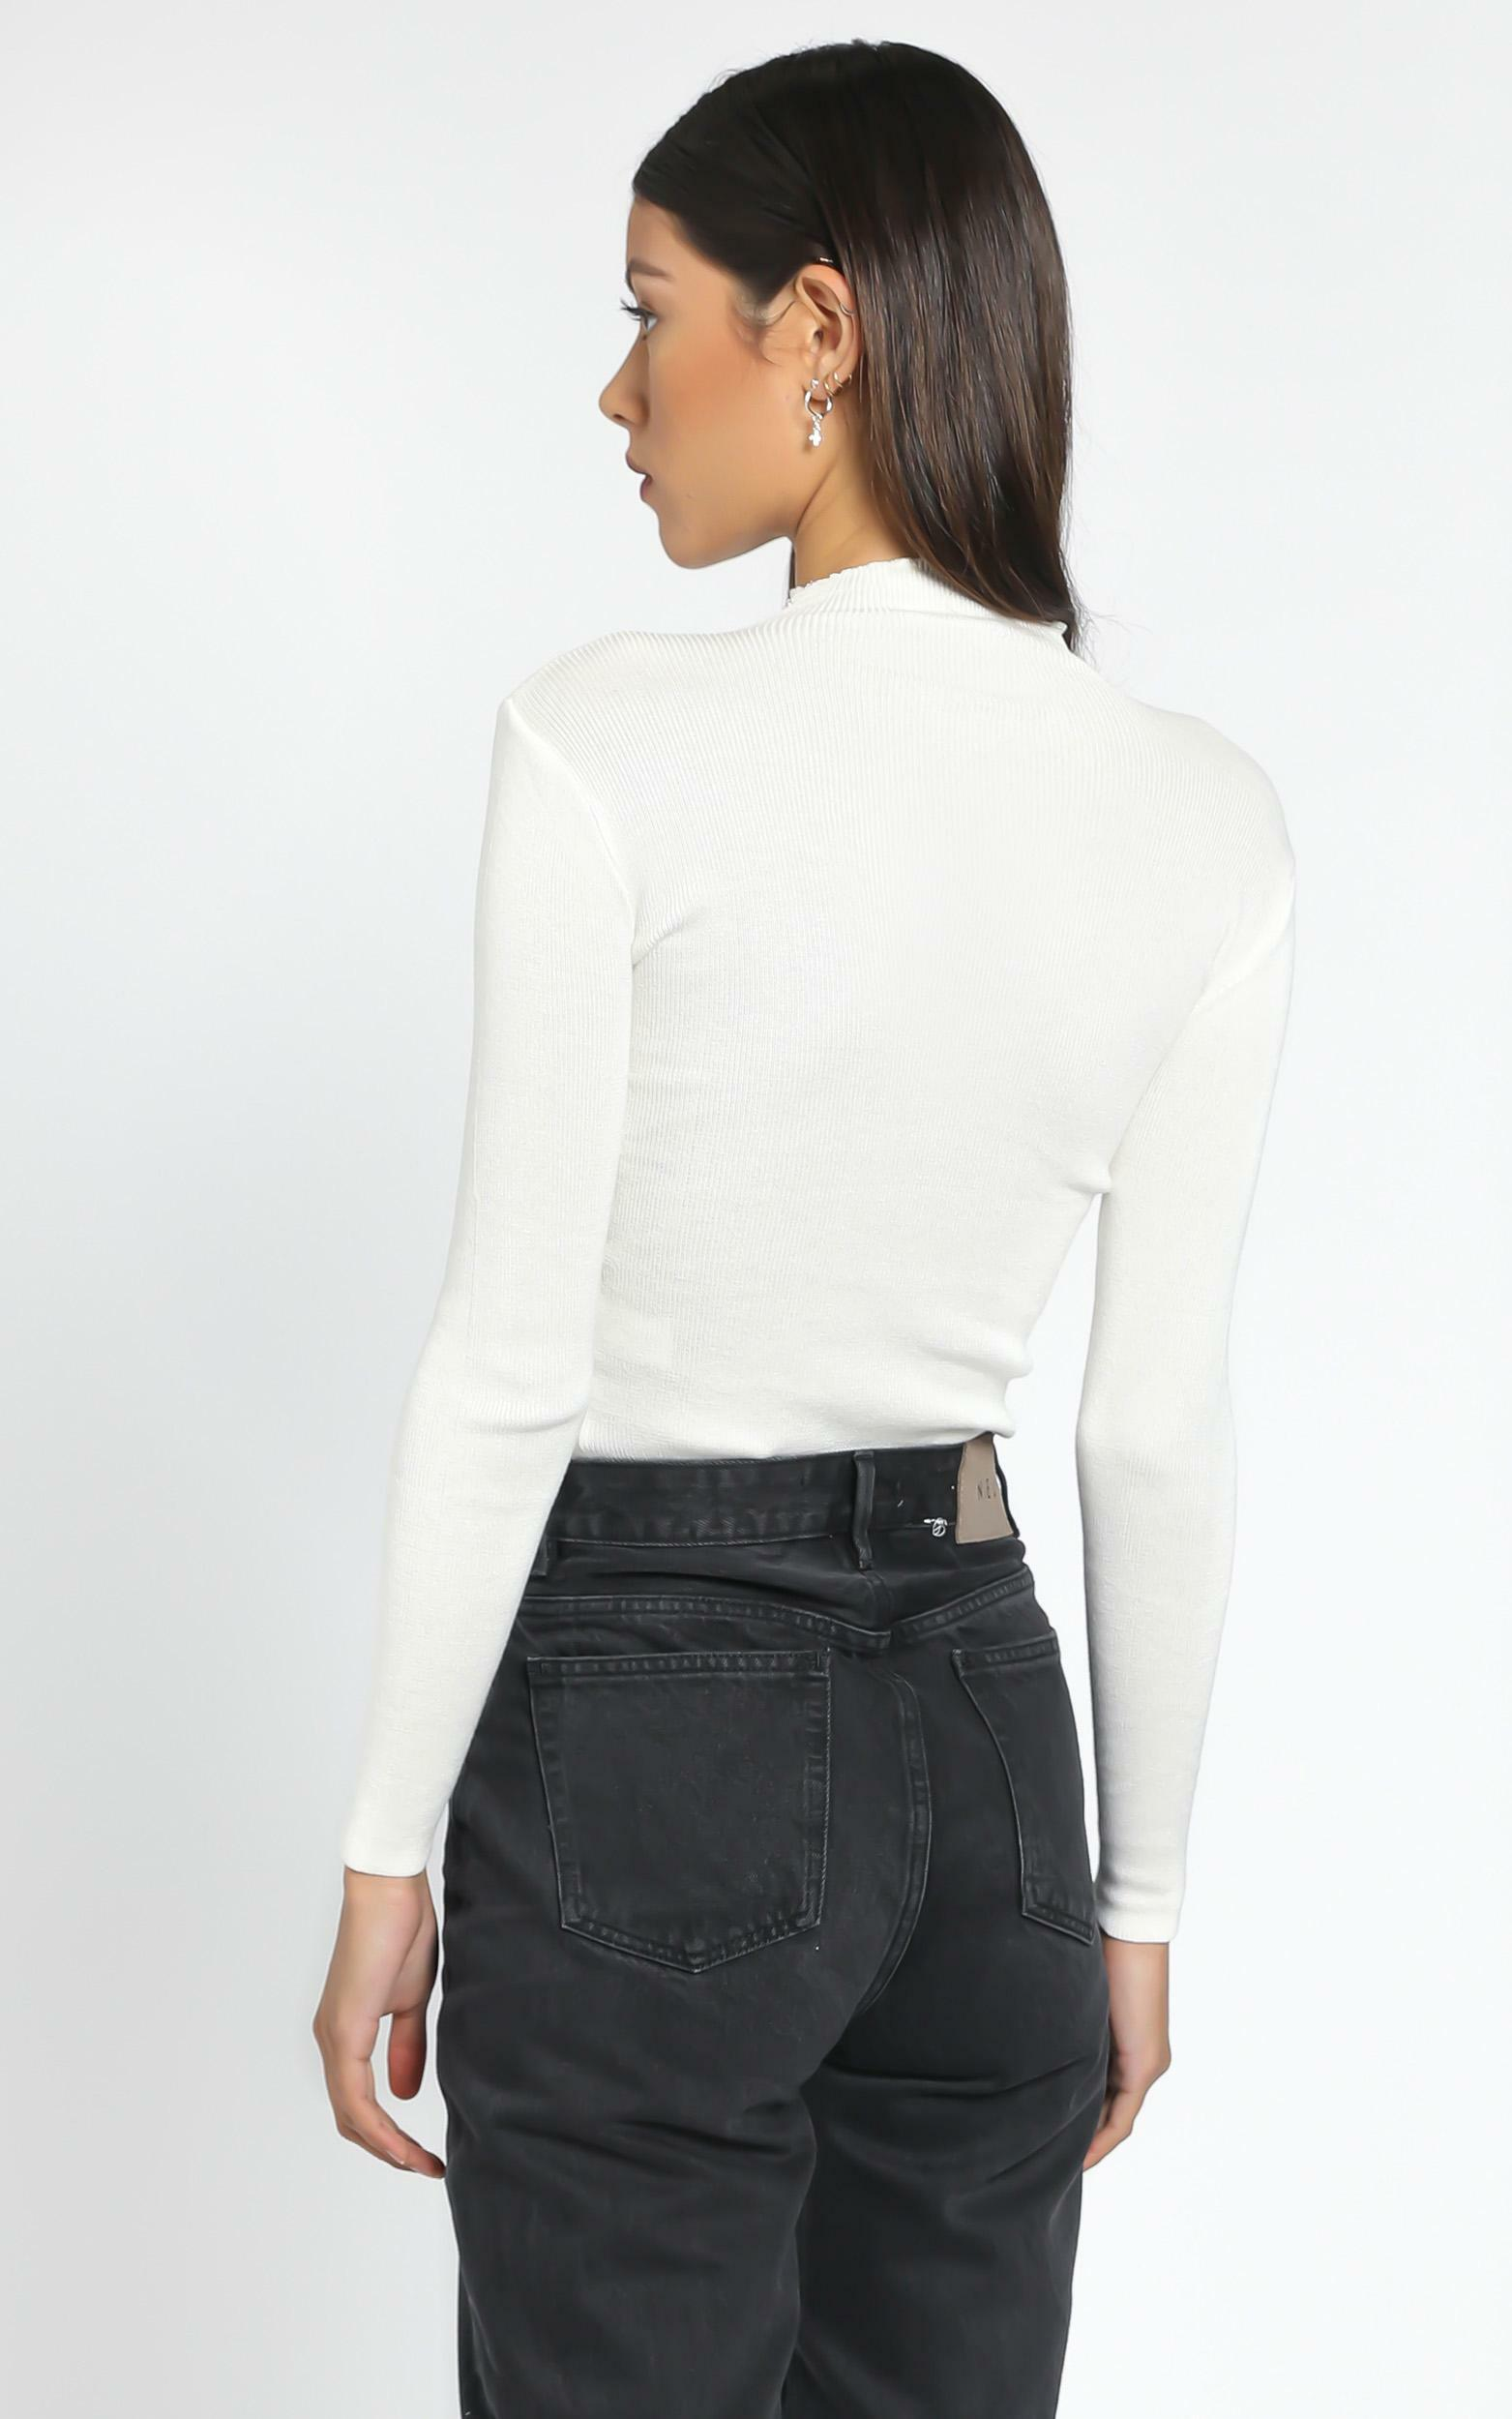 Lust for life knit top in white - 4 (XXS), White, hi-res image number null